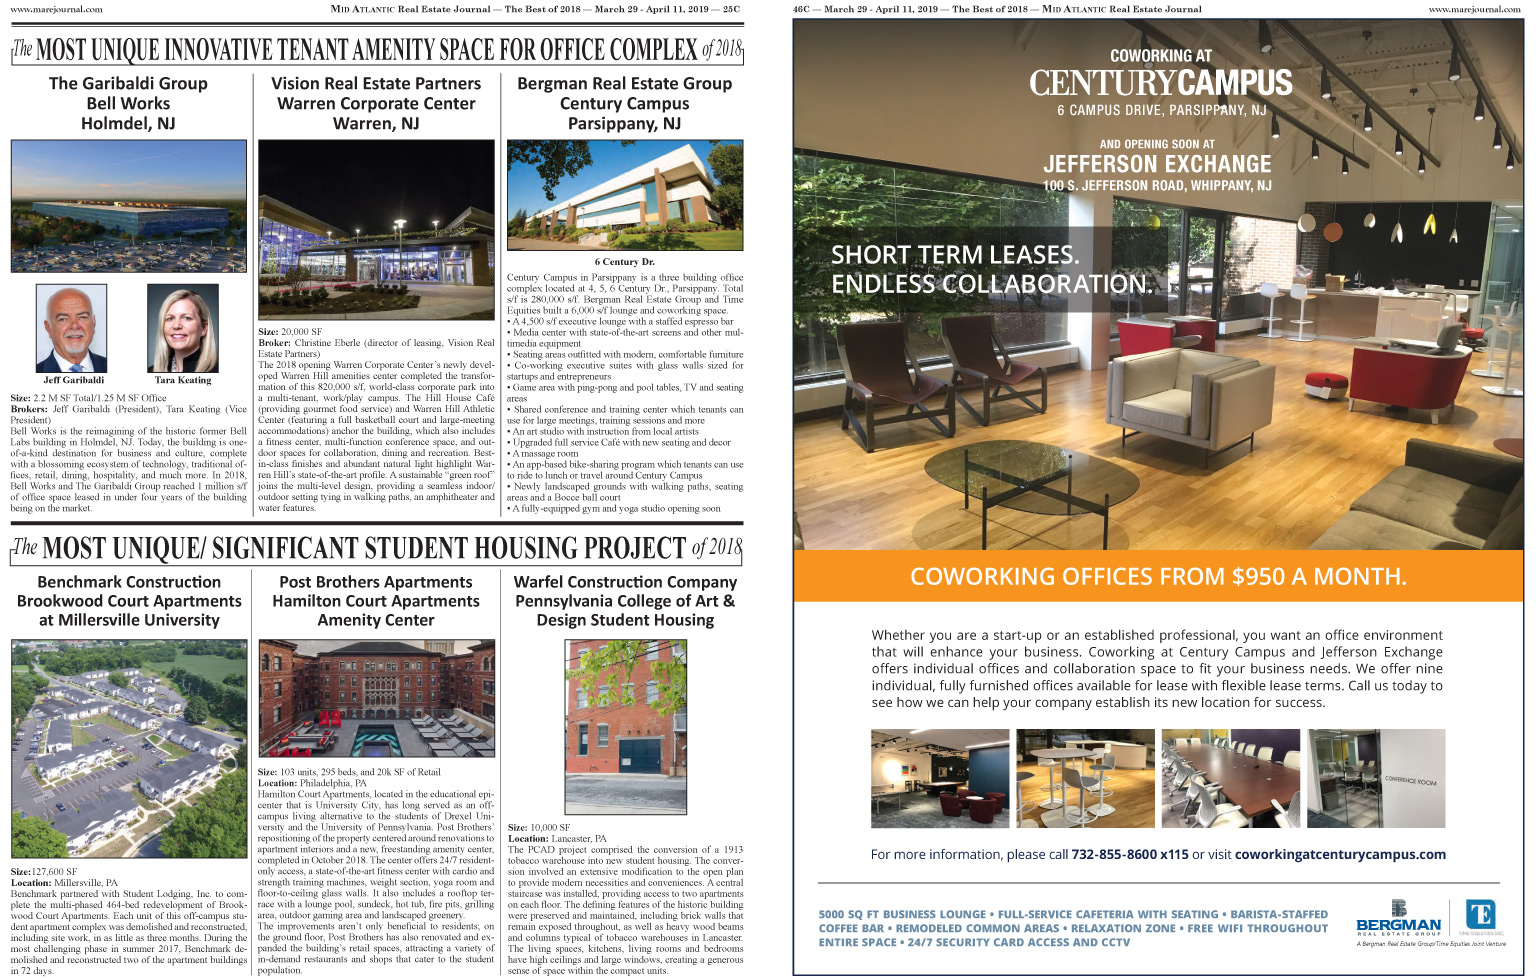 Century Campus in Parsippany, NJ wins the Mid Atlantic Real Estate